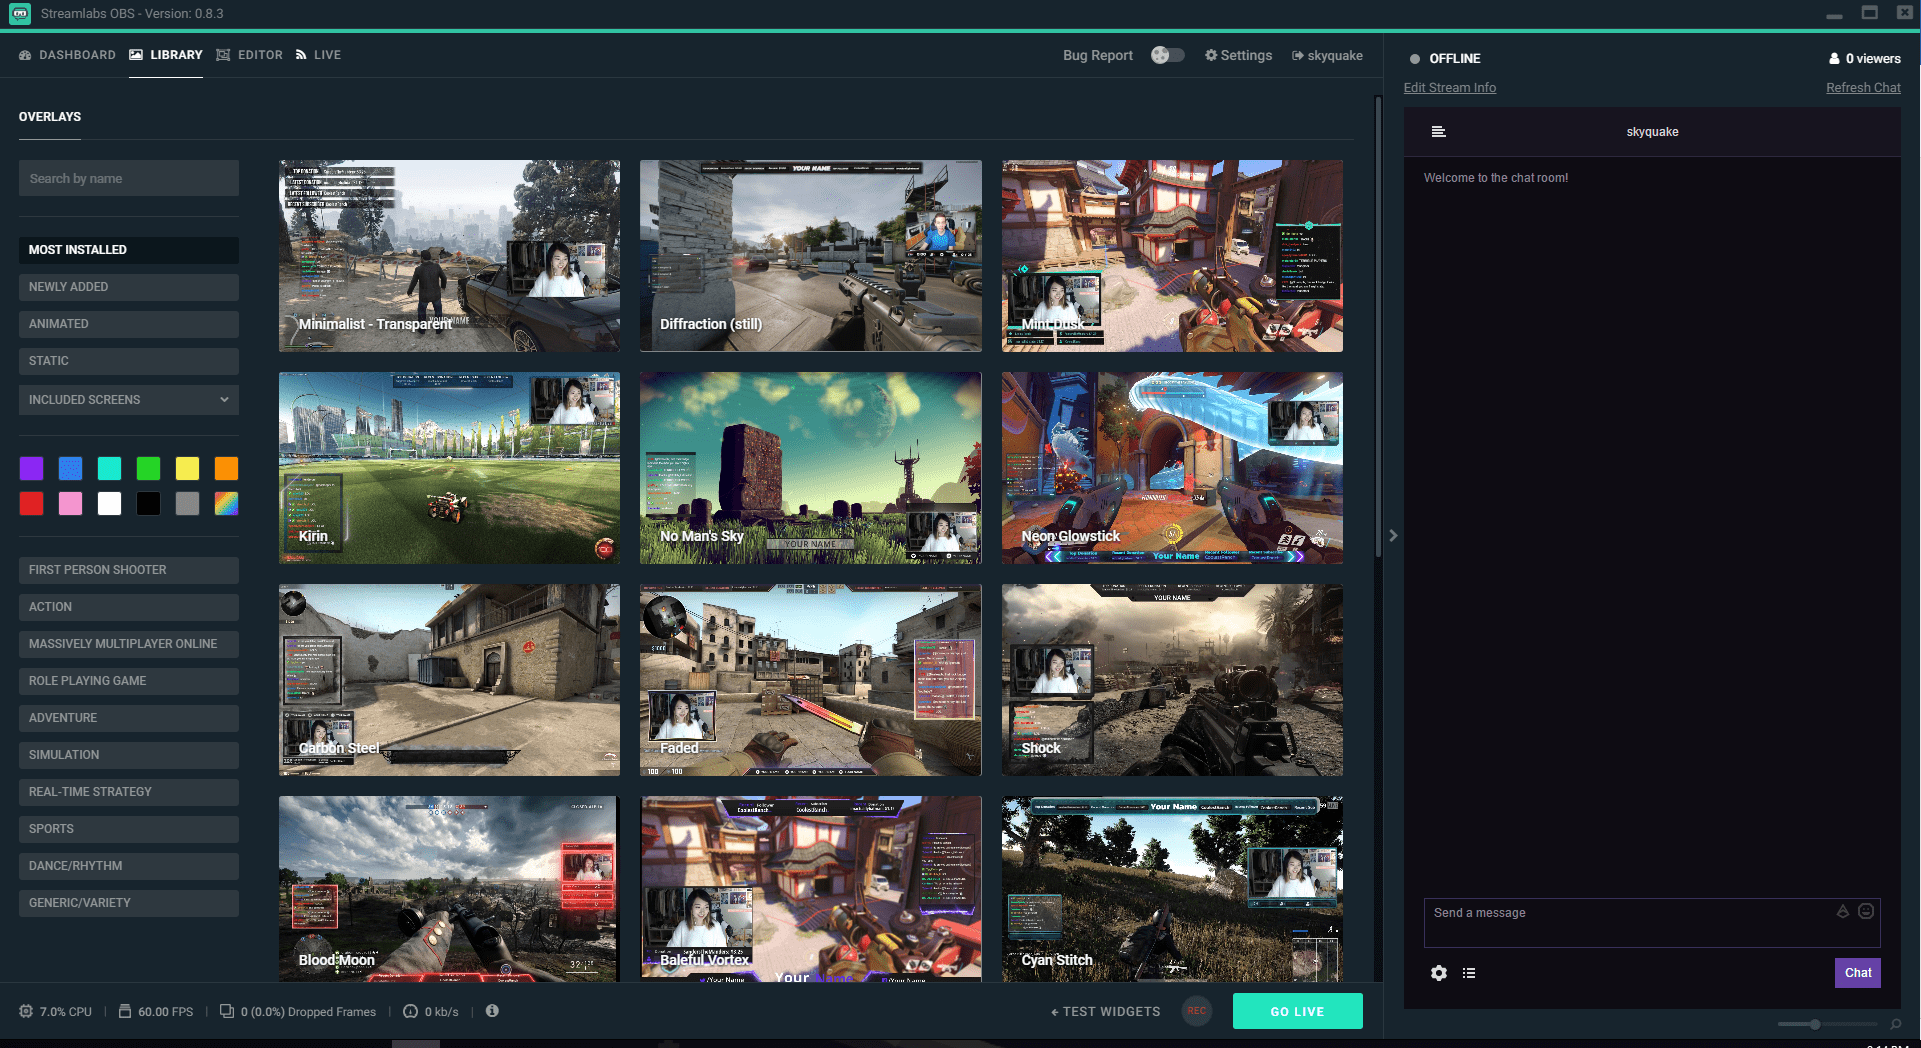 Streamlabs OBS Beta Releases - StreamerSquare